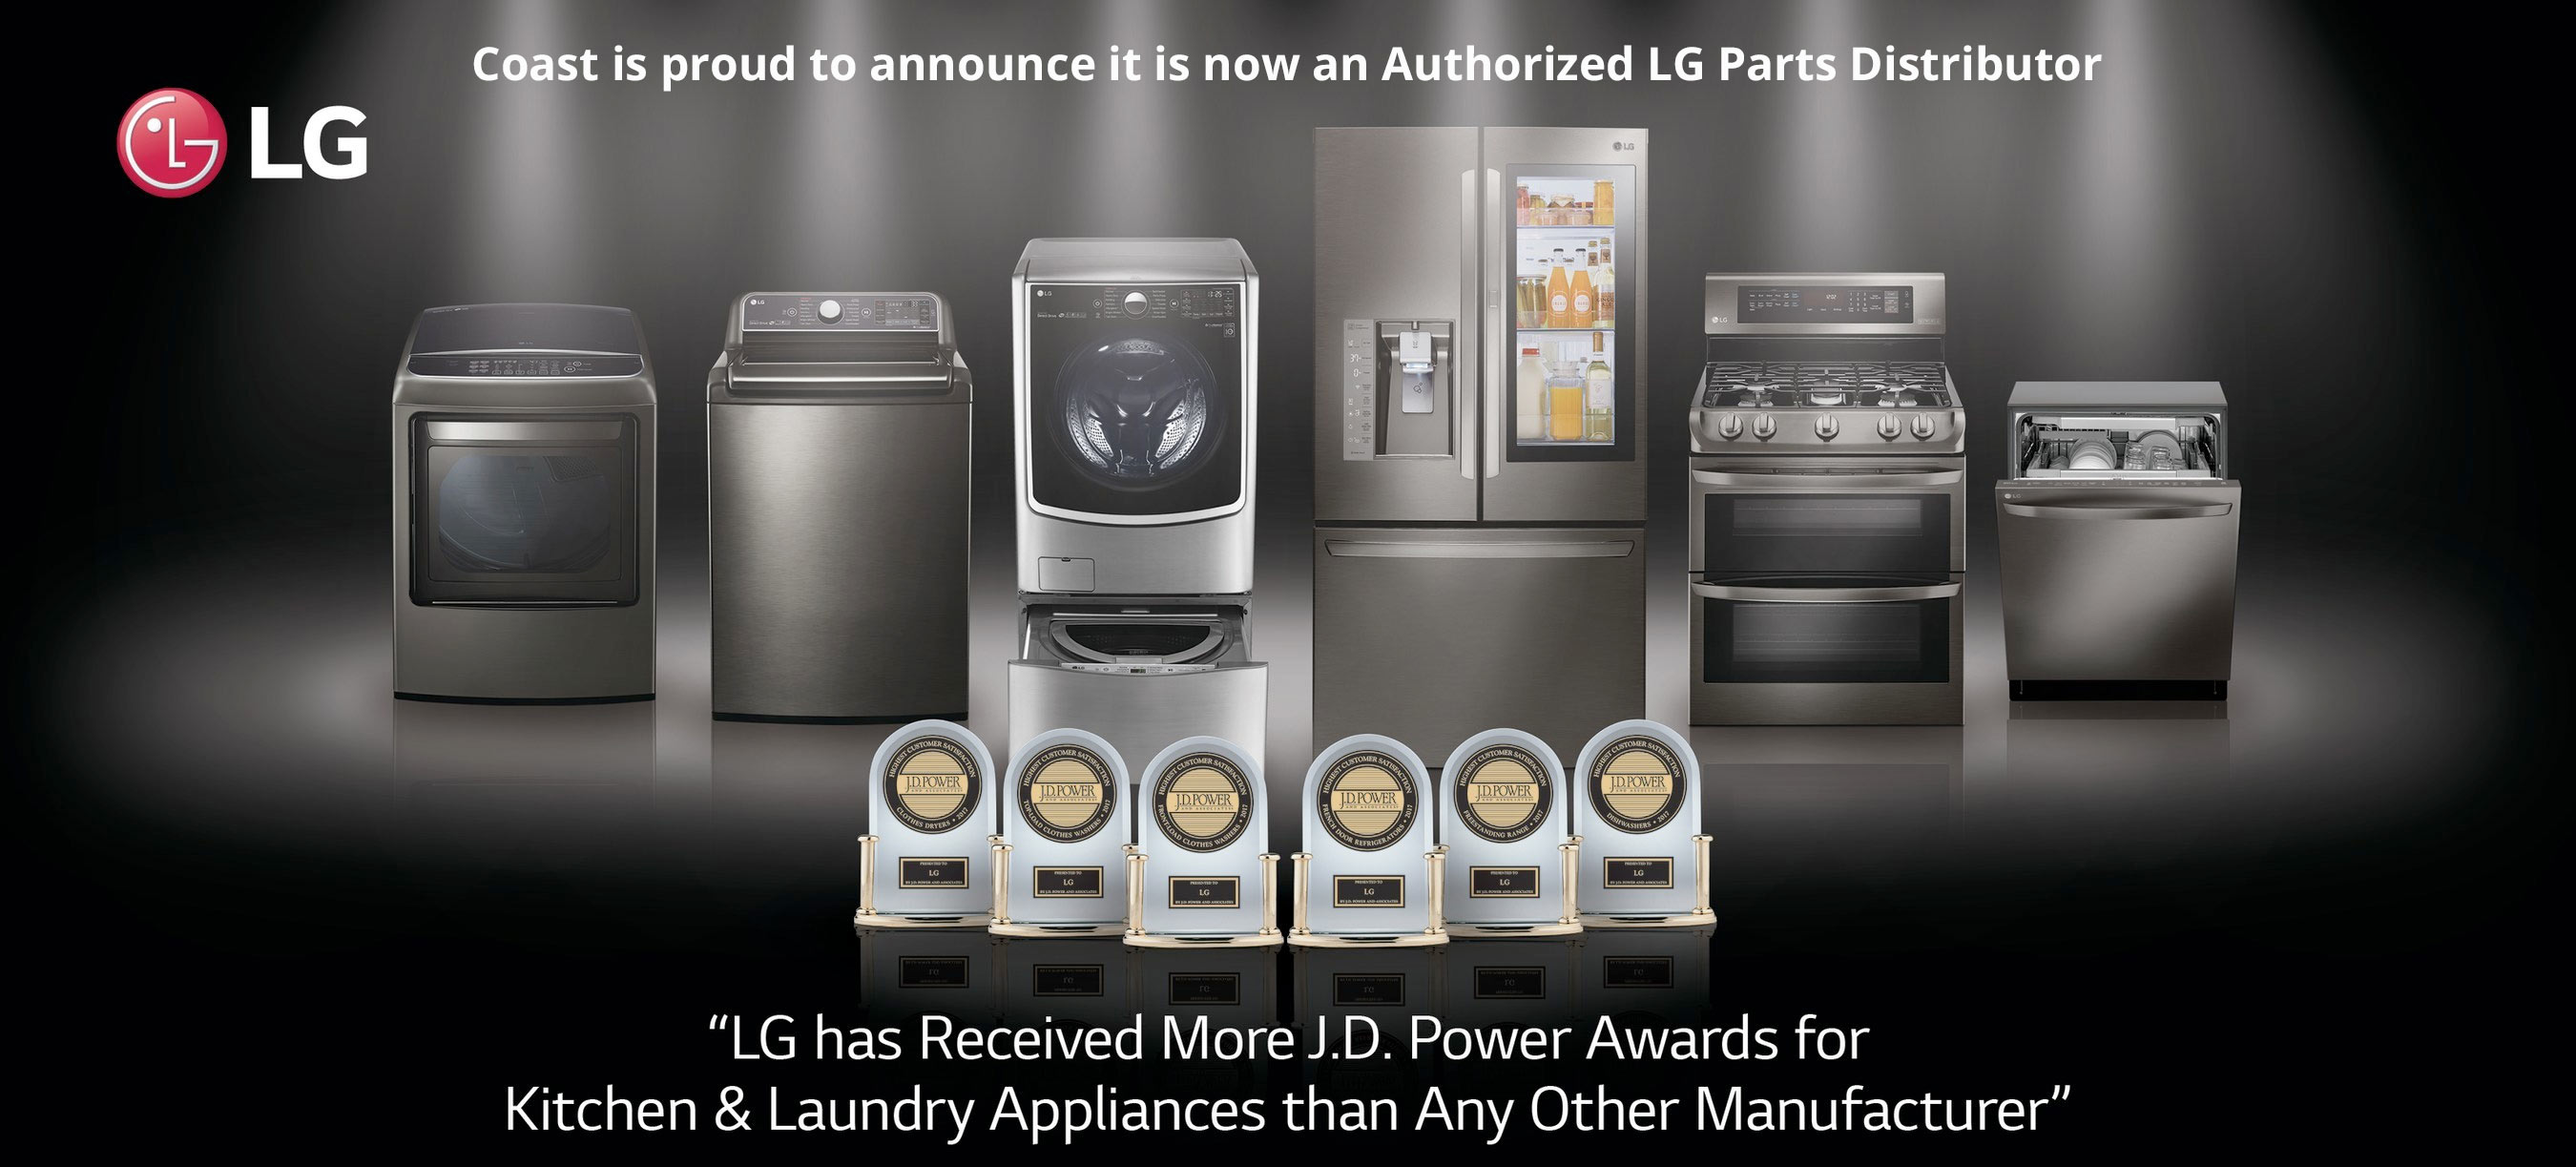 Coast is proud to announce it is now an Authorized LG Parts Distributor